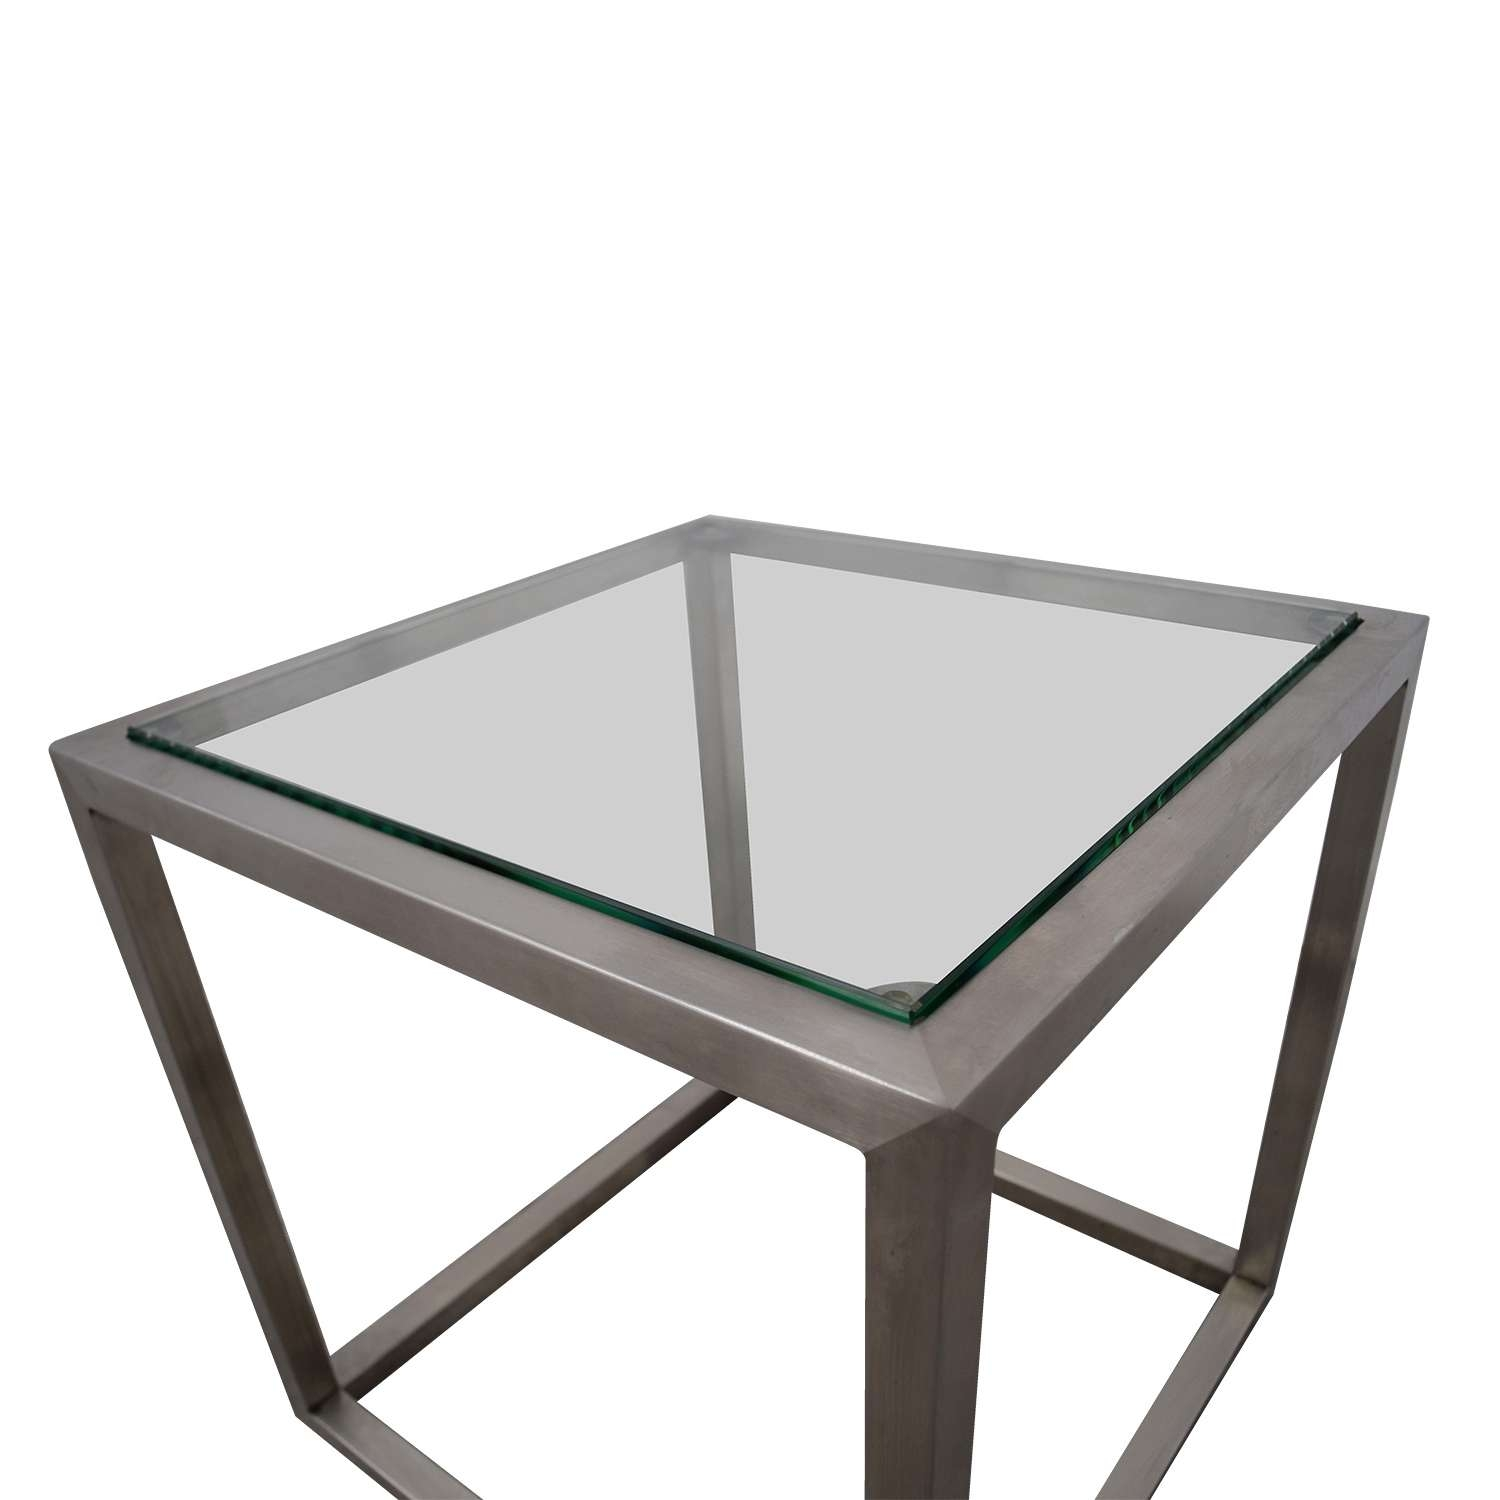 [%recent White Cube Coffee Tables Pertaining To 70% Off – Ethan Allen Ethan Allen Metal And Glass Cube Coffee|70% Off – Ethan Allen Ethan Allen Metal And Glass Cube Coffee Intended For Favorite White Cube Coffee Tables%] (View 19 of 20)